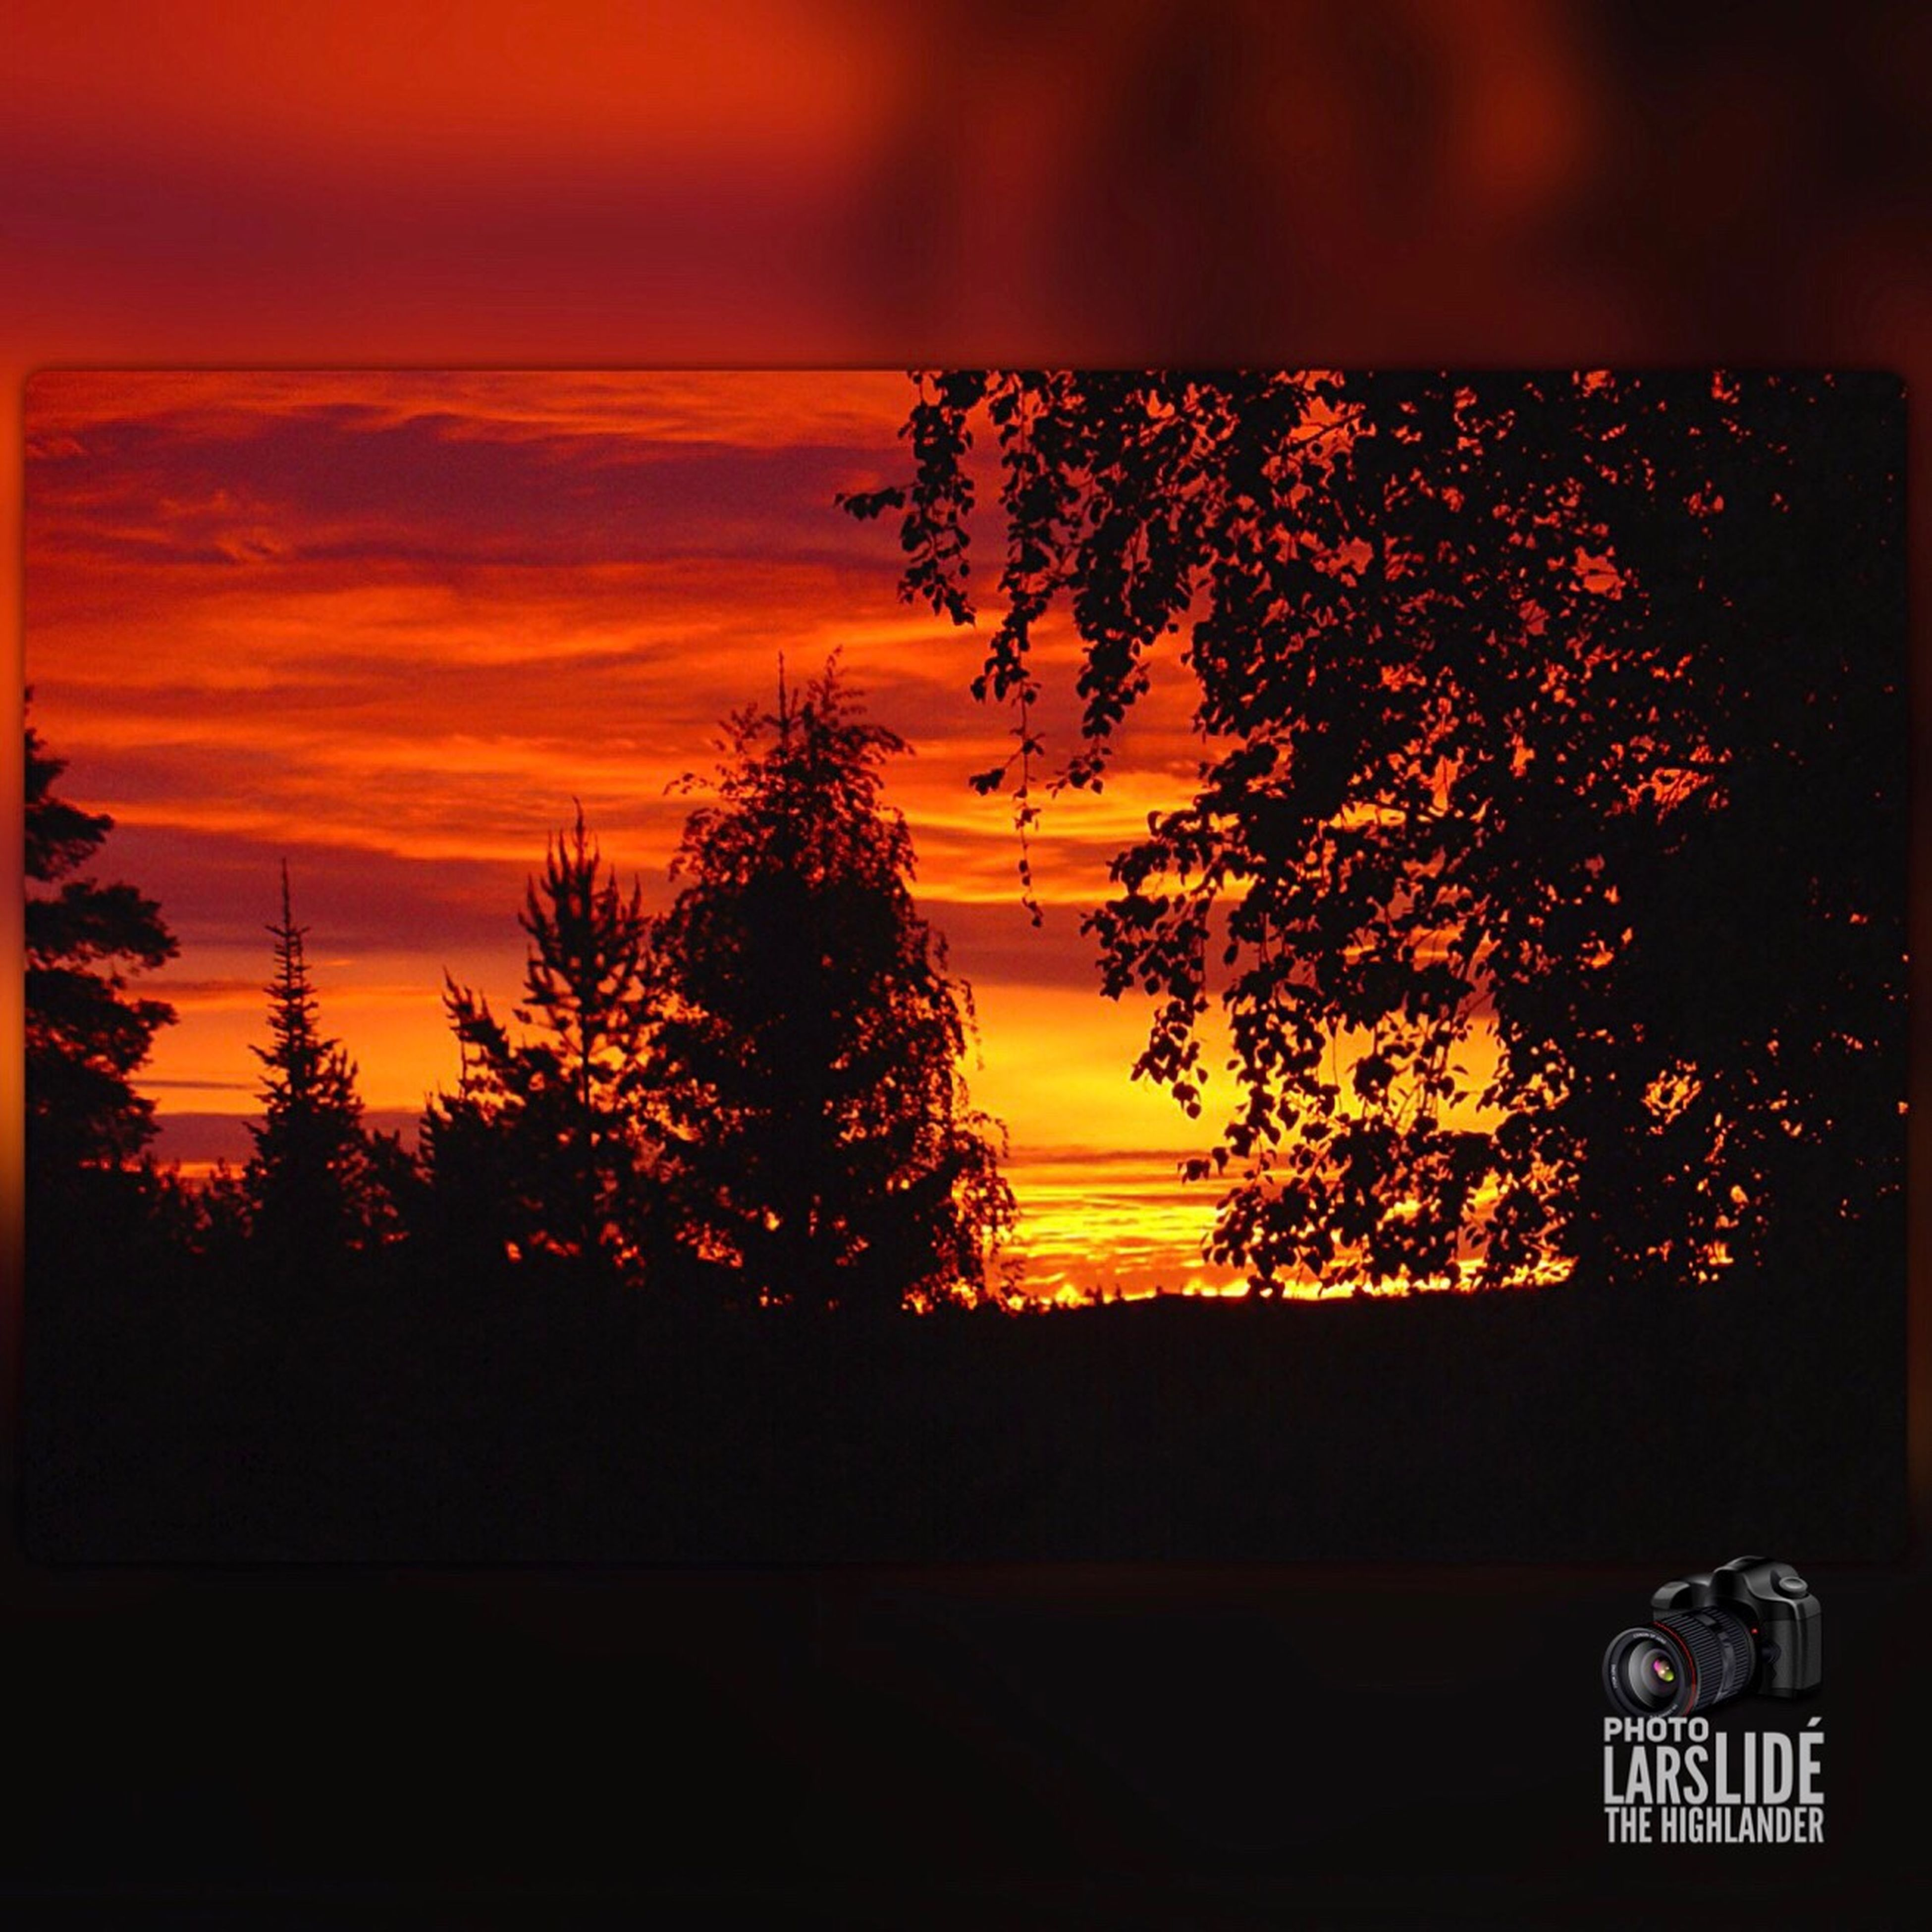 sunset, tree, orange color, nature, beauty in nature, no people, sky, silhouette, outdoors, scenics, cloud - sky, day